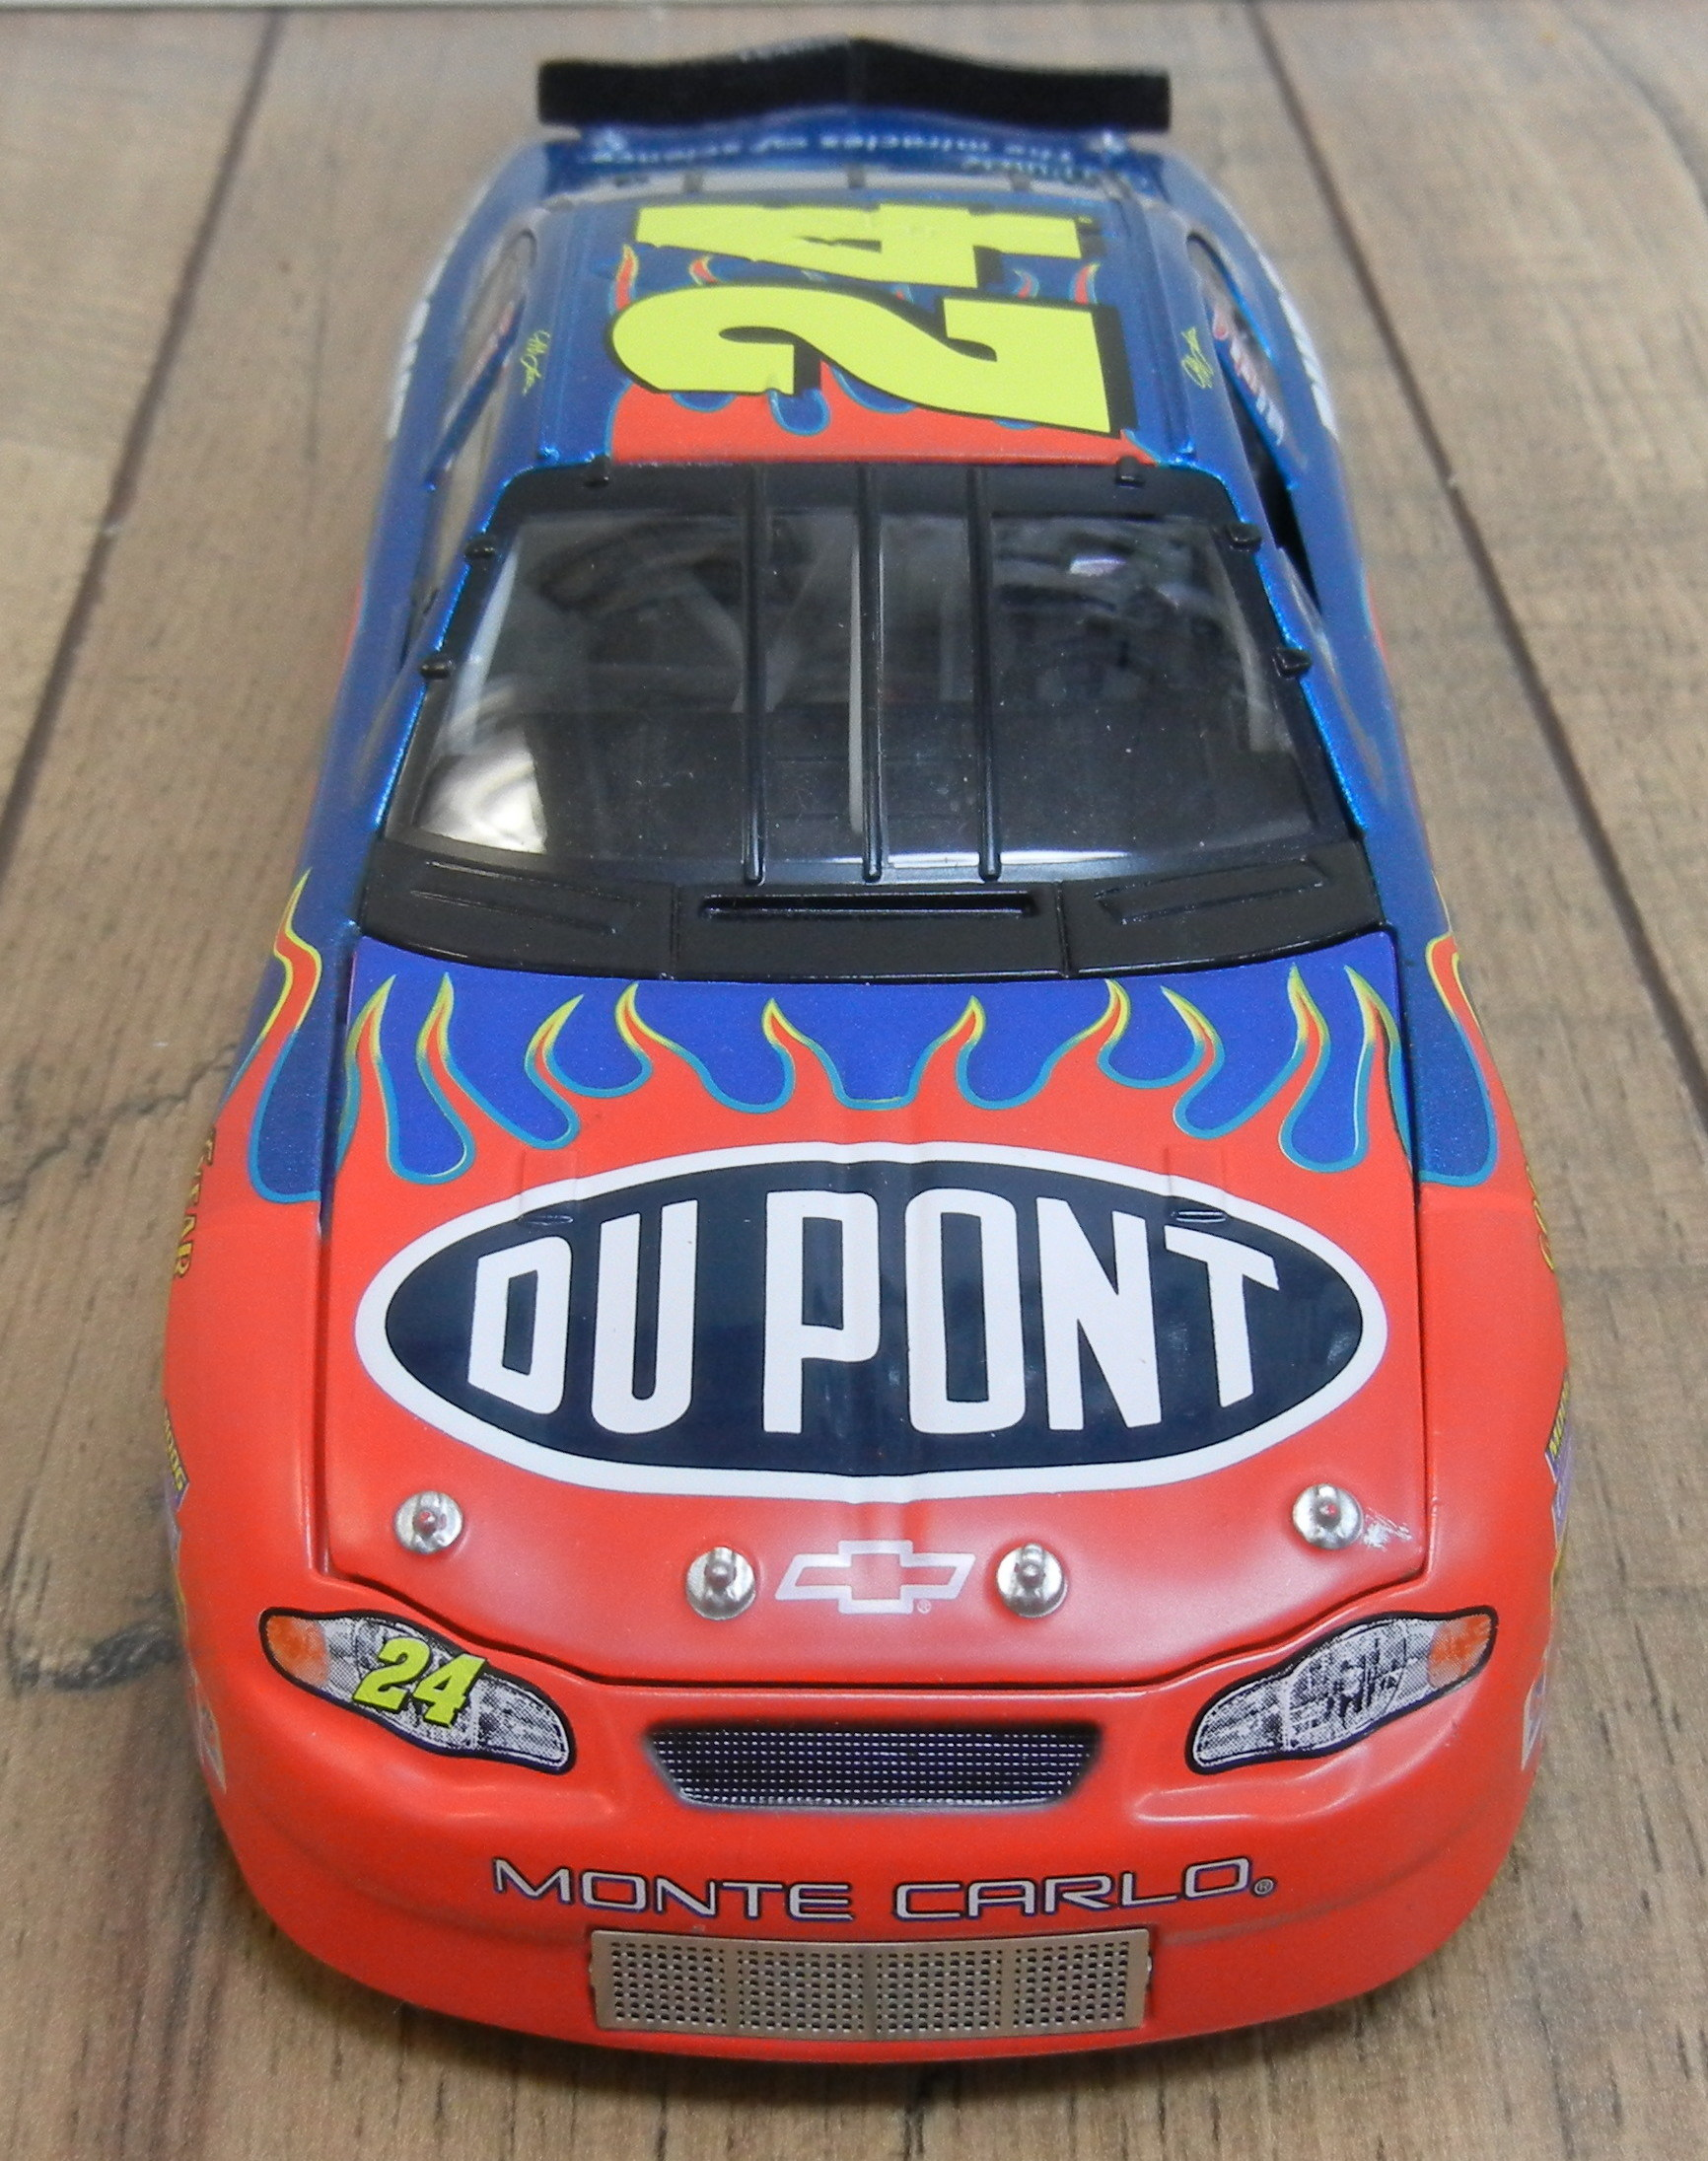 JEFF GORDON 2000 - DUPONT - MONTE CARLO - DIE CAST - NASCAR STOCK CAR